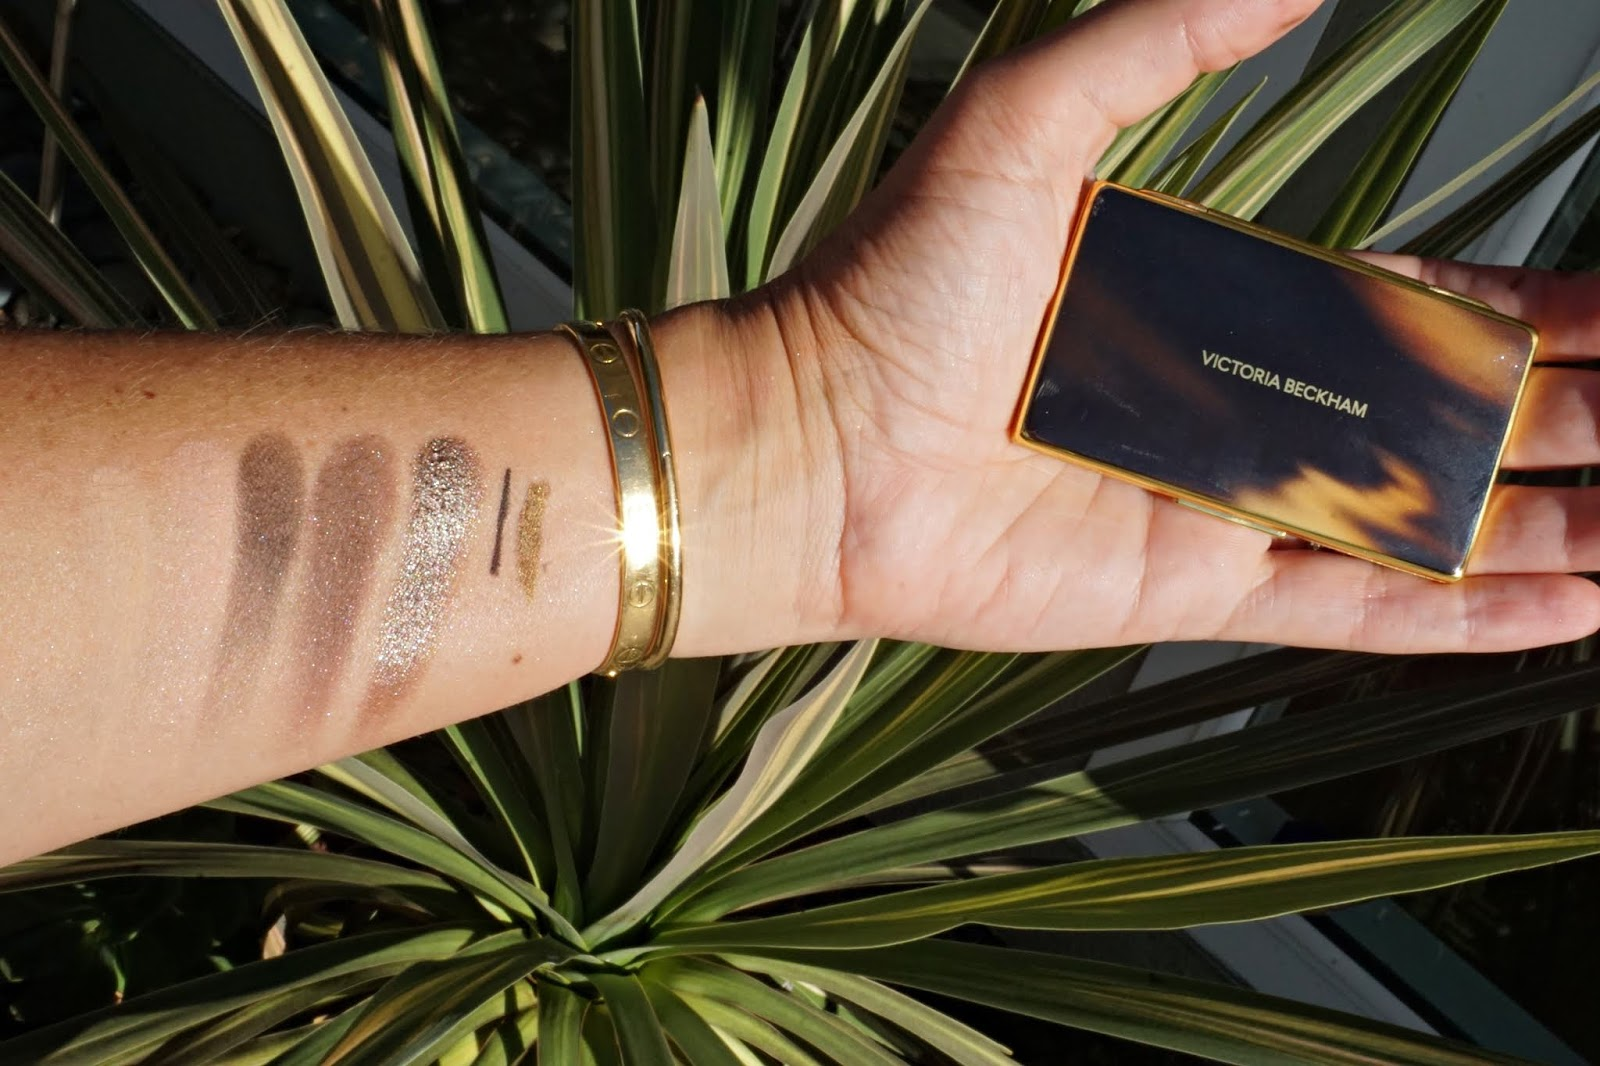 Victoria Beckham beauty swatches